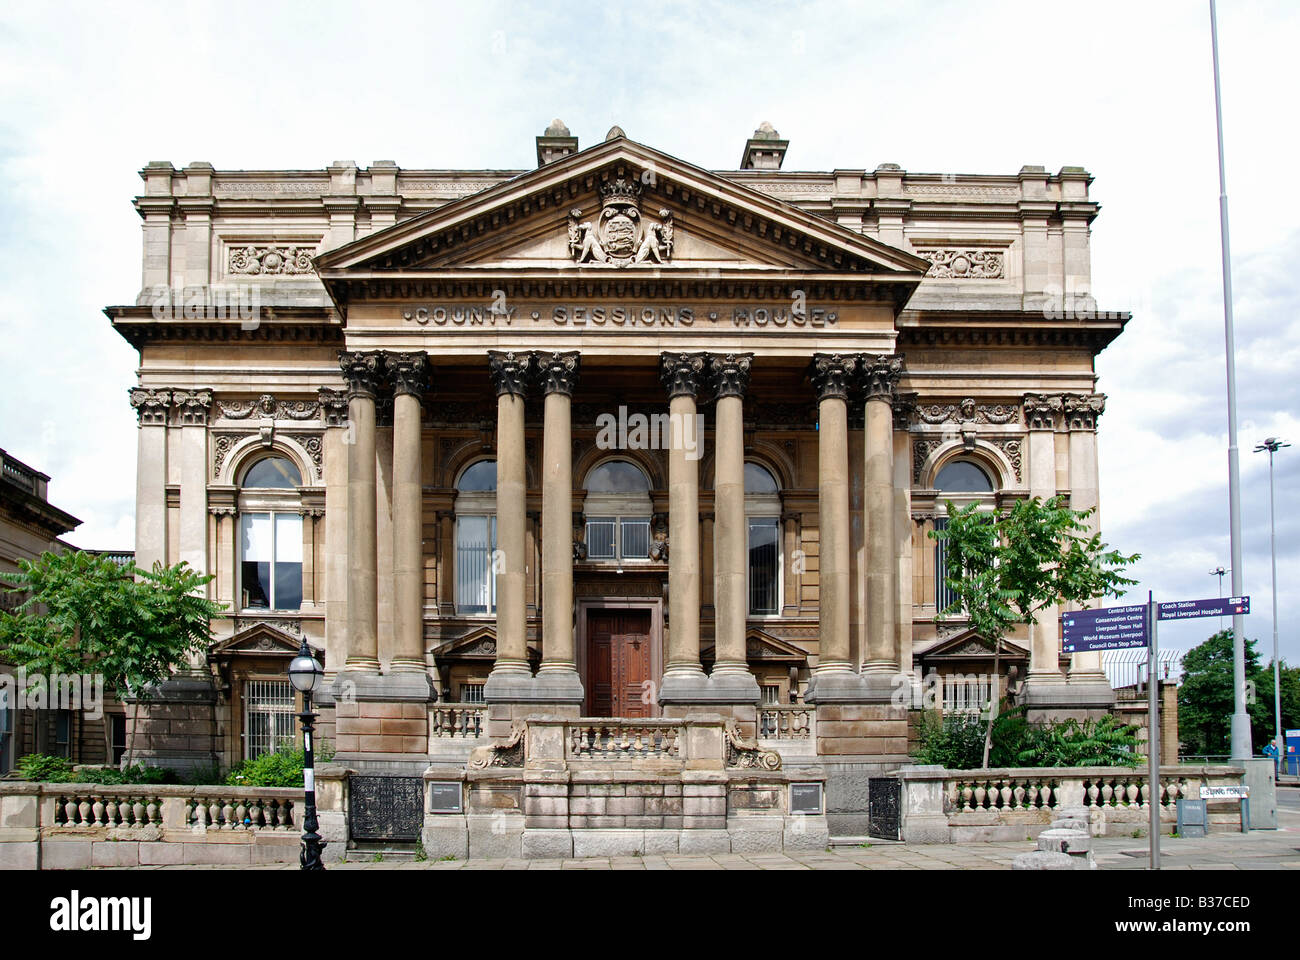 the old 'county sessions house' in liverpool,england,uk - Stock Image